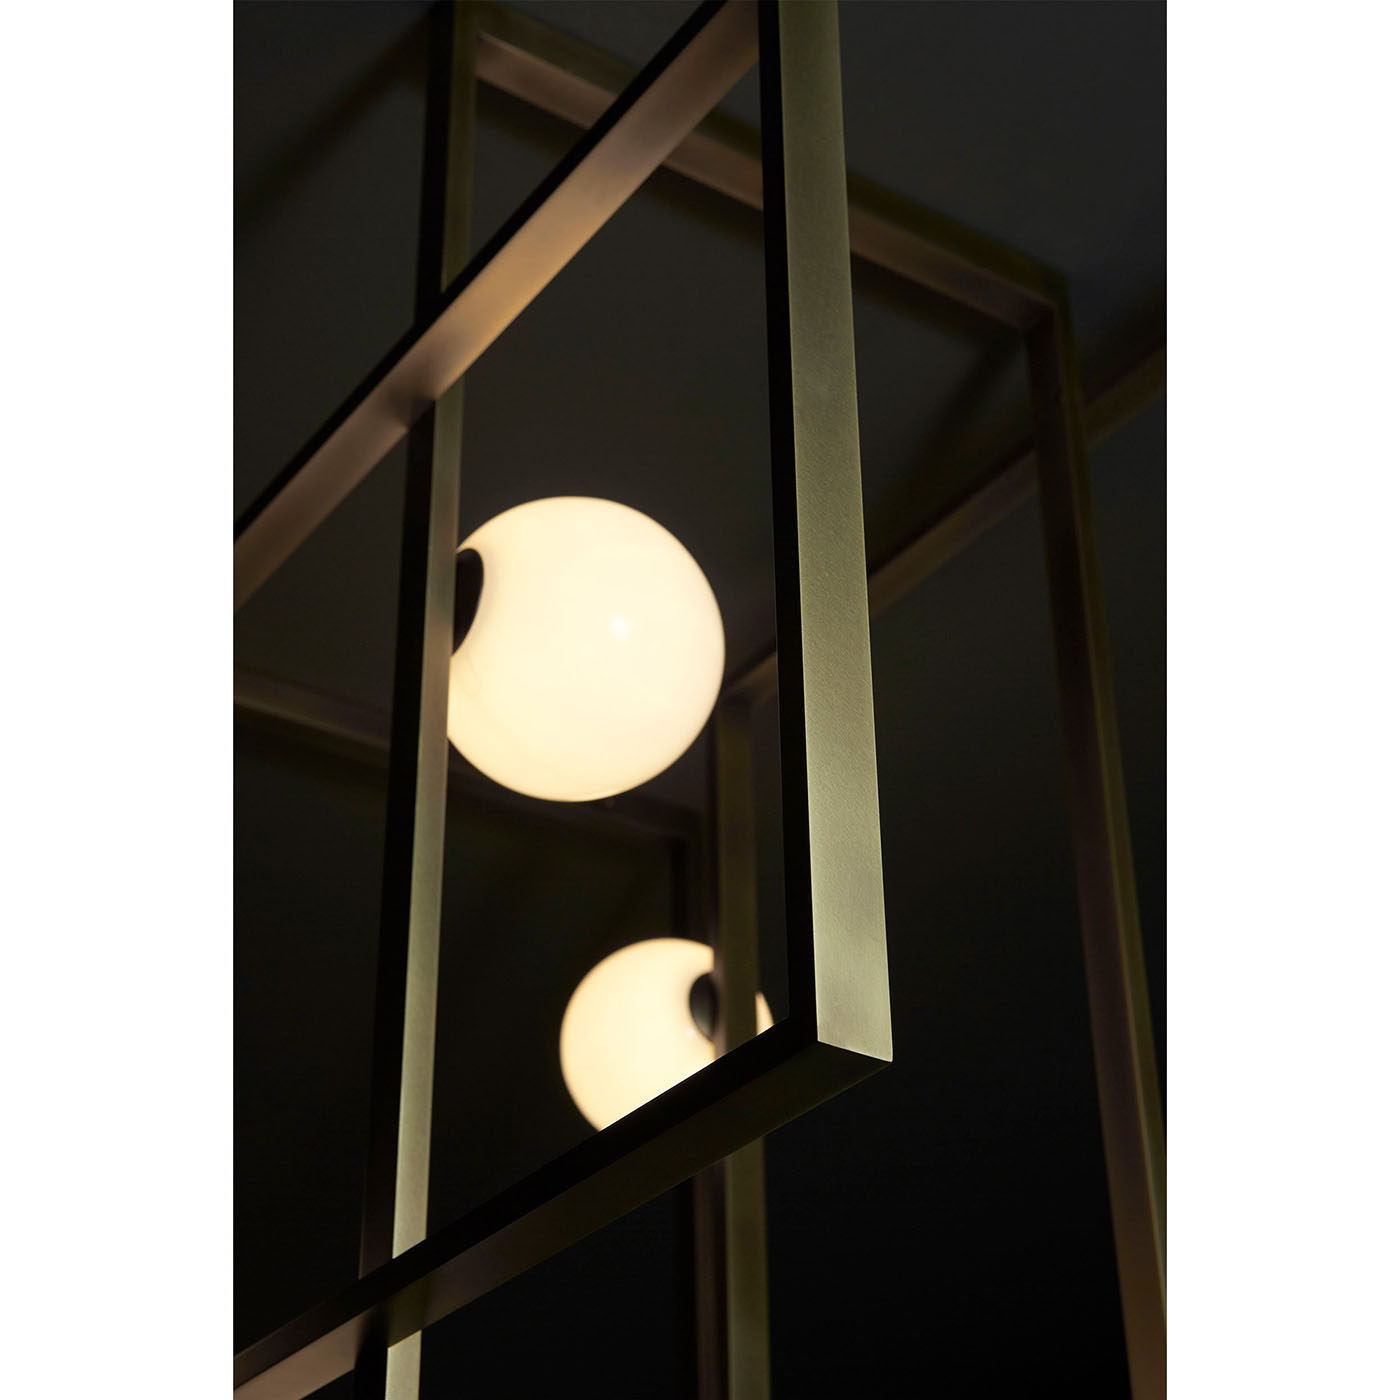 Suspension luminaire de luxe Mondrian, design italien - IDKREA Collection